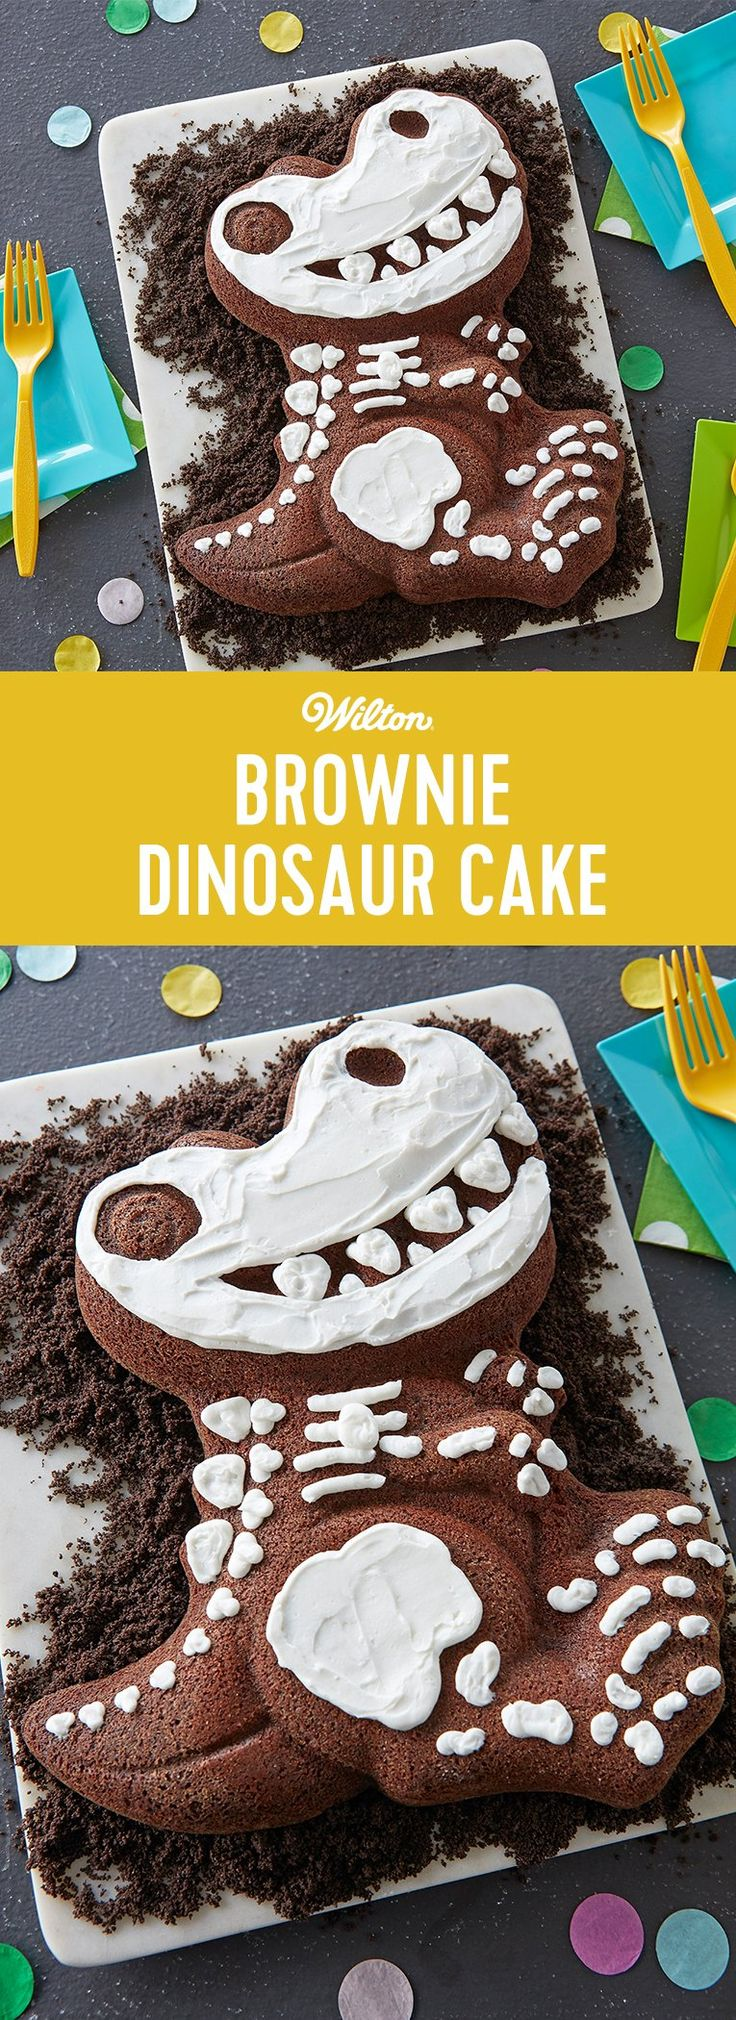 Whether you're having a Jurassic-sized birthday party or just think dinosaurs are dino-mite, this Good to the Bone Brownie Dino Cake is top of the food chain, no bones about it! Made using your favorite brownie mix and decorated with simple white icing, this dinosaur cake is great for beginners. If you don't like brownies, you can also make this cake with chocolate cake or pound cake.